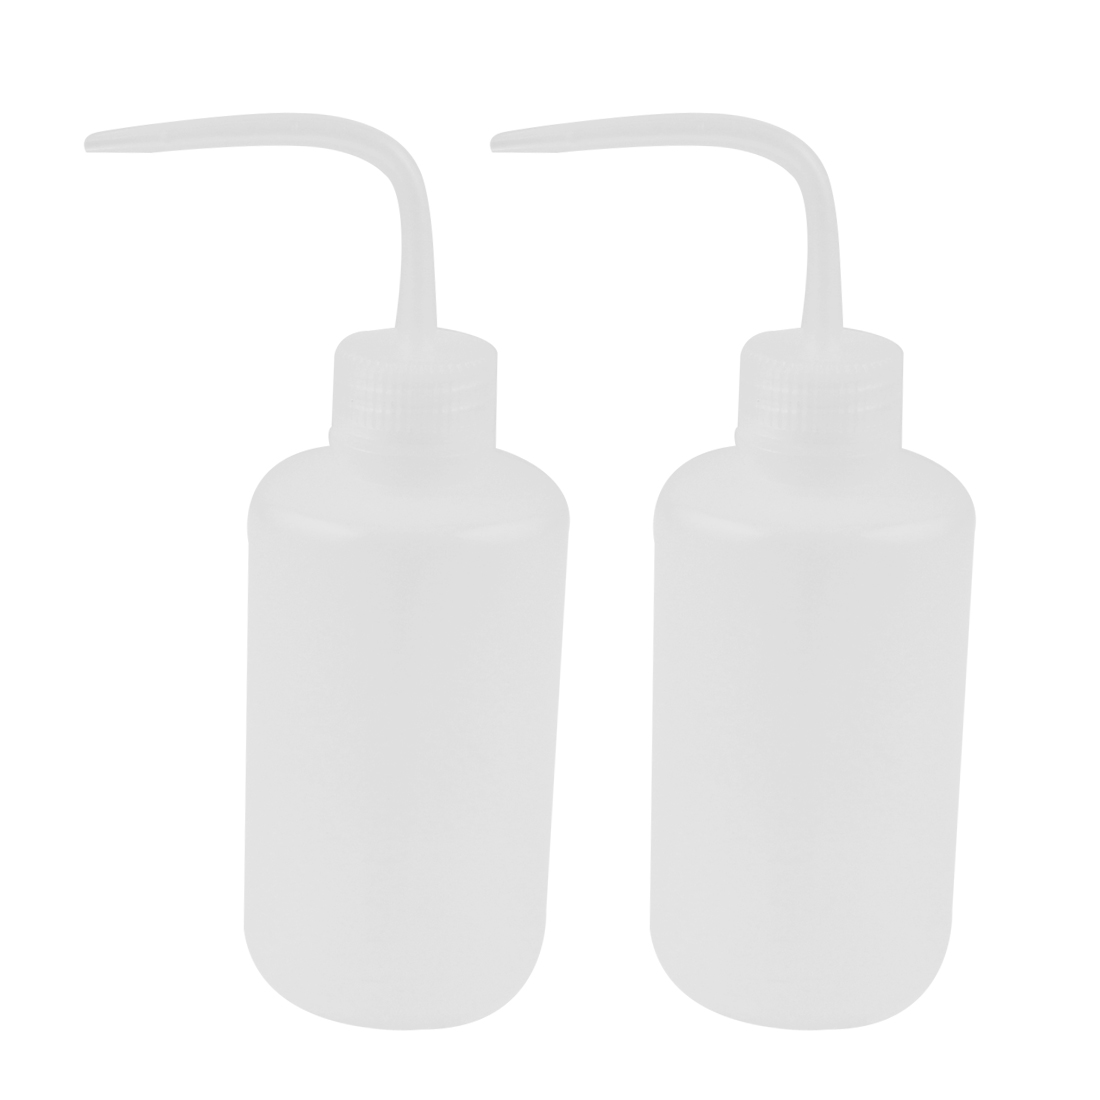 Lab Right Angle Bent Tip Plastic Liquid Storage Squeeze Bottle Dispenser 250mL 2 Pcs